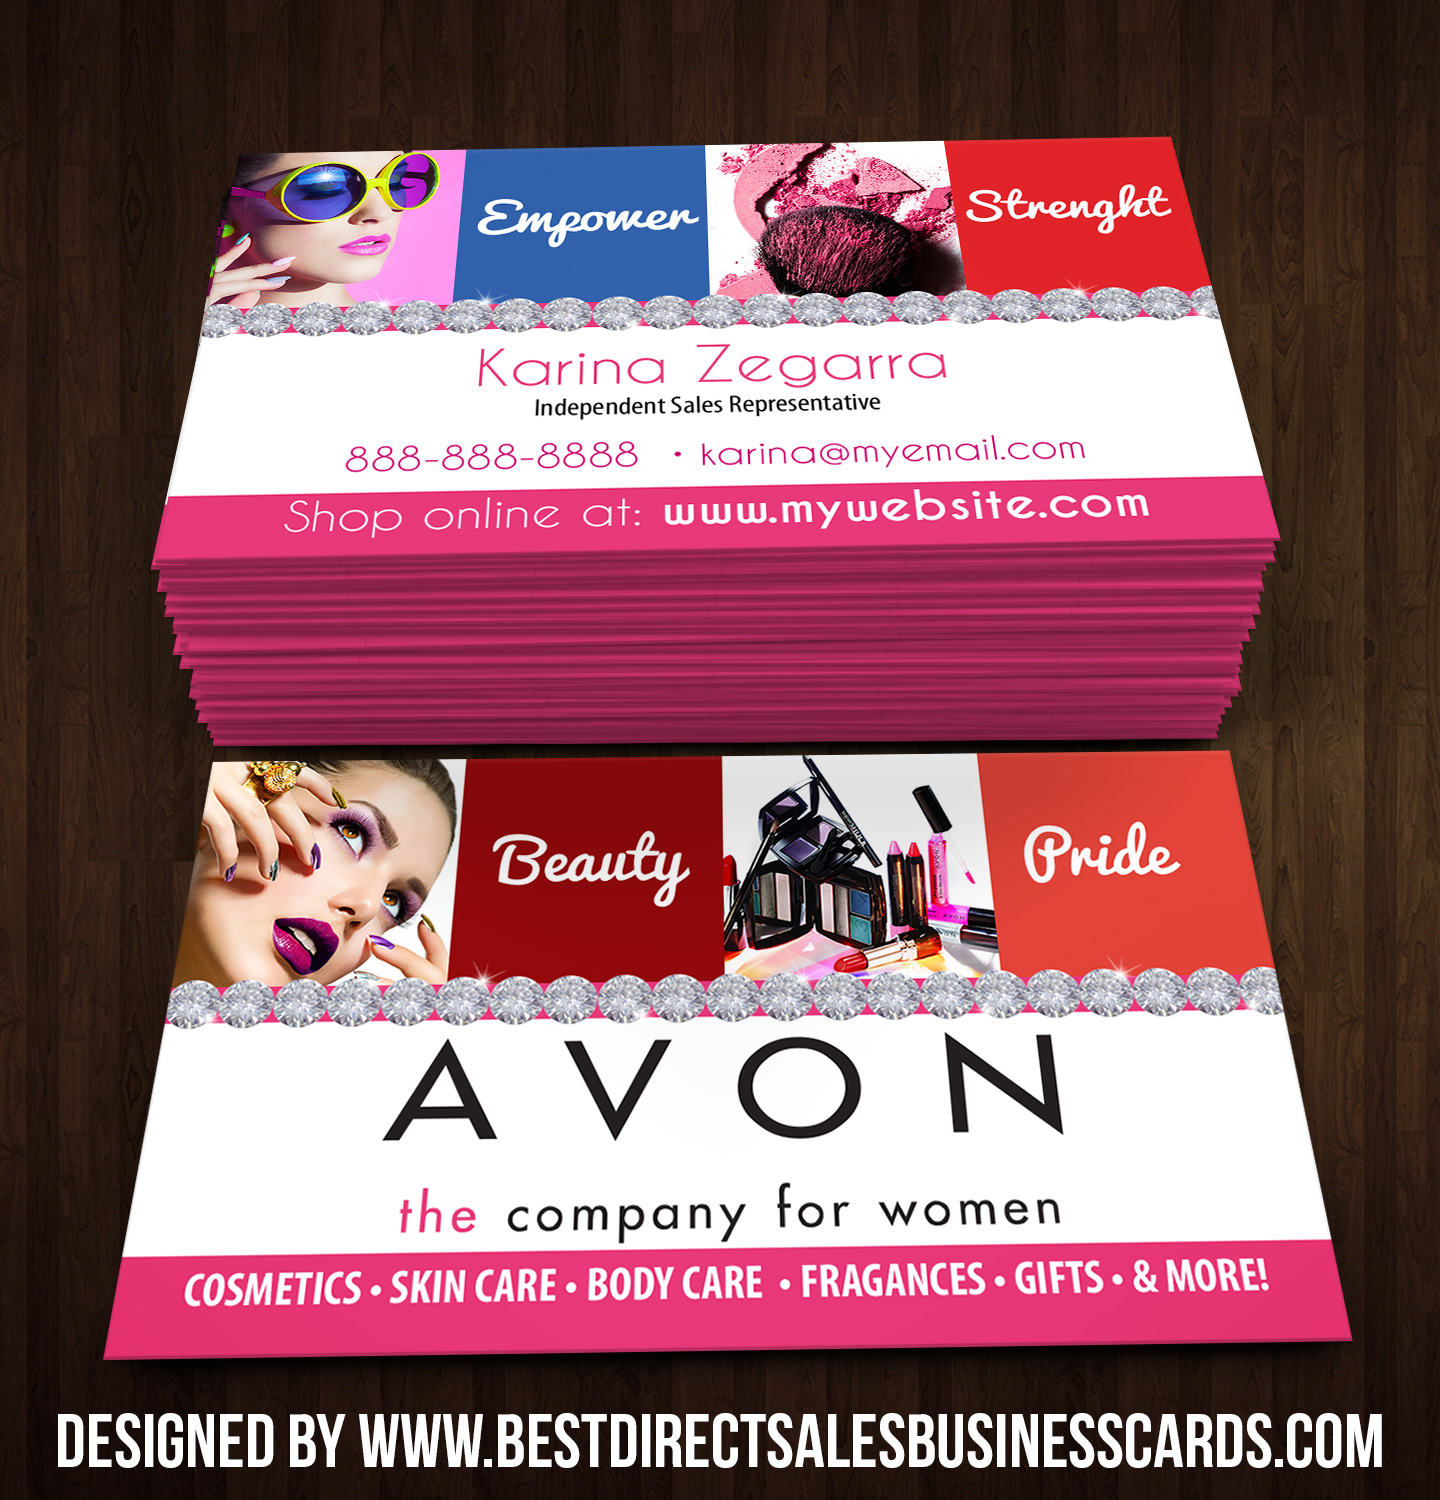 Avon Business Cards style 4 · KZ Creative Services · Online Store ...